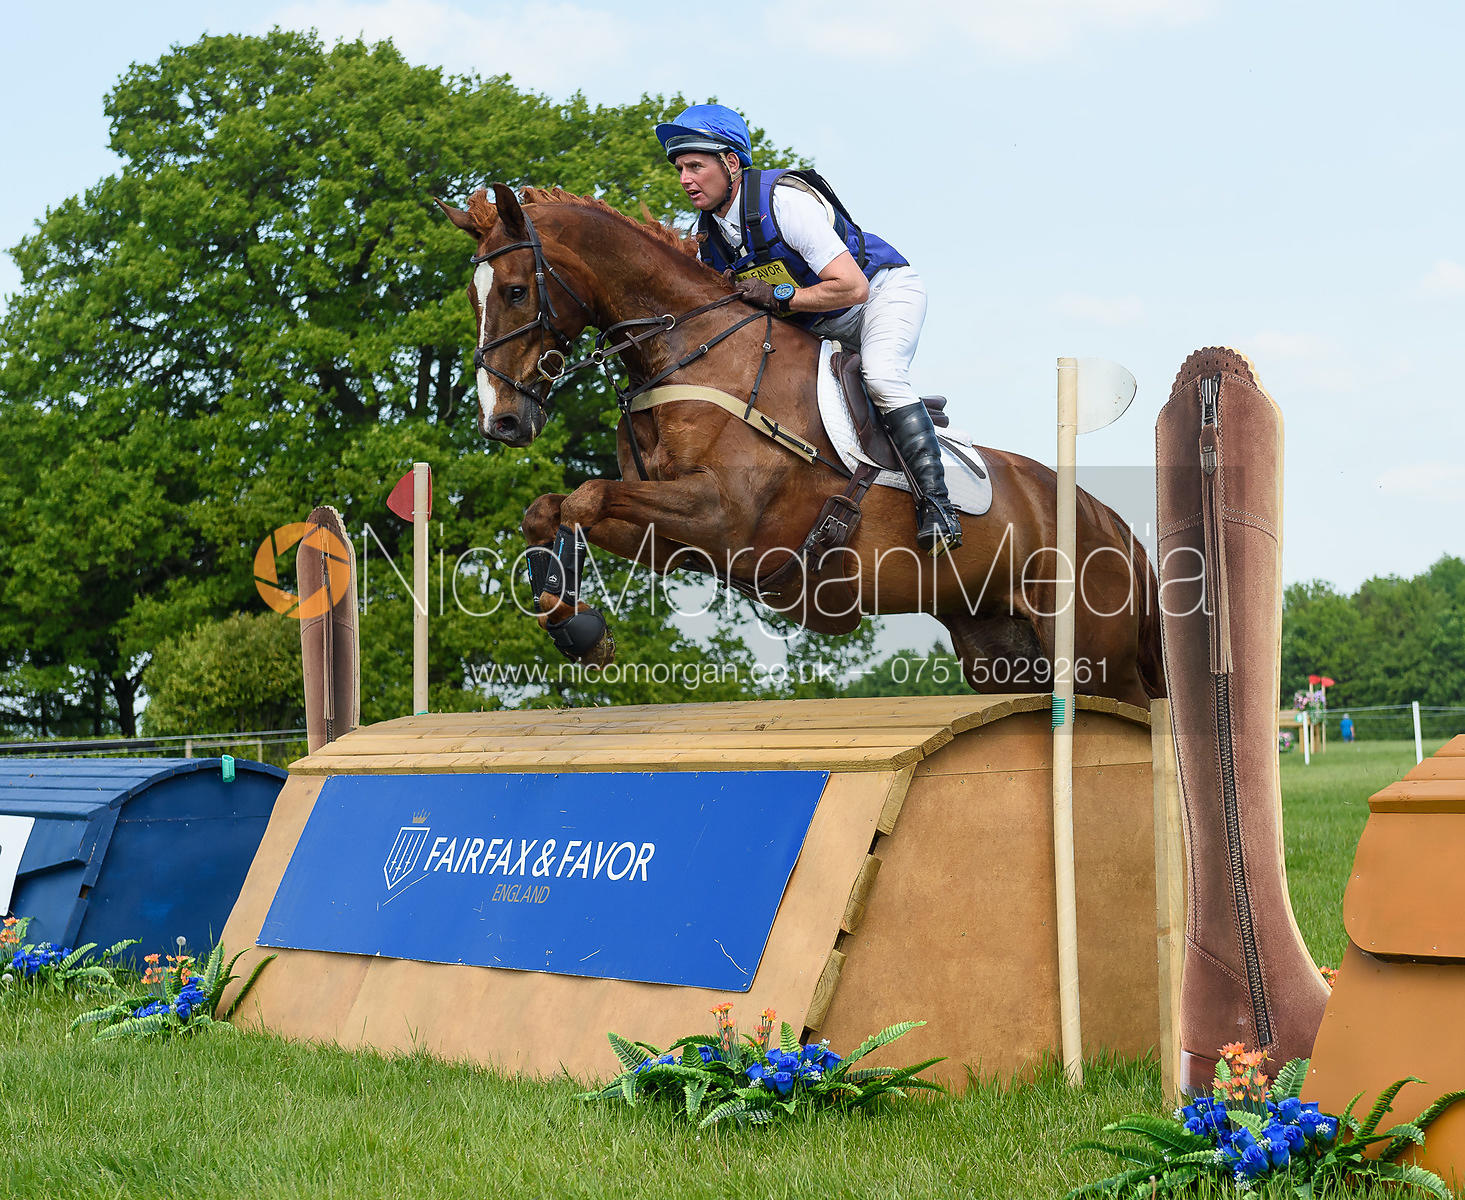 Andrew James and LORIENS HIGH AND MIGHTY, Fairfax & Favor Rockingham Horse Trials 2018